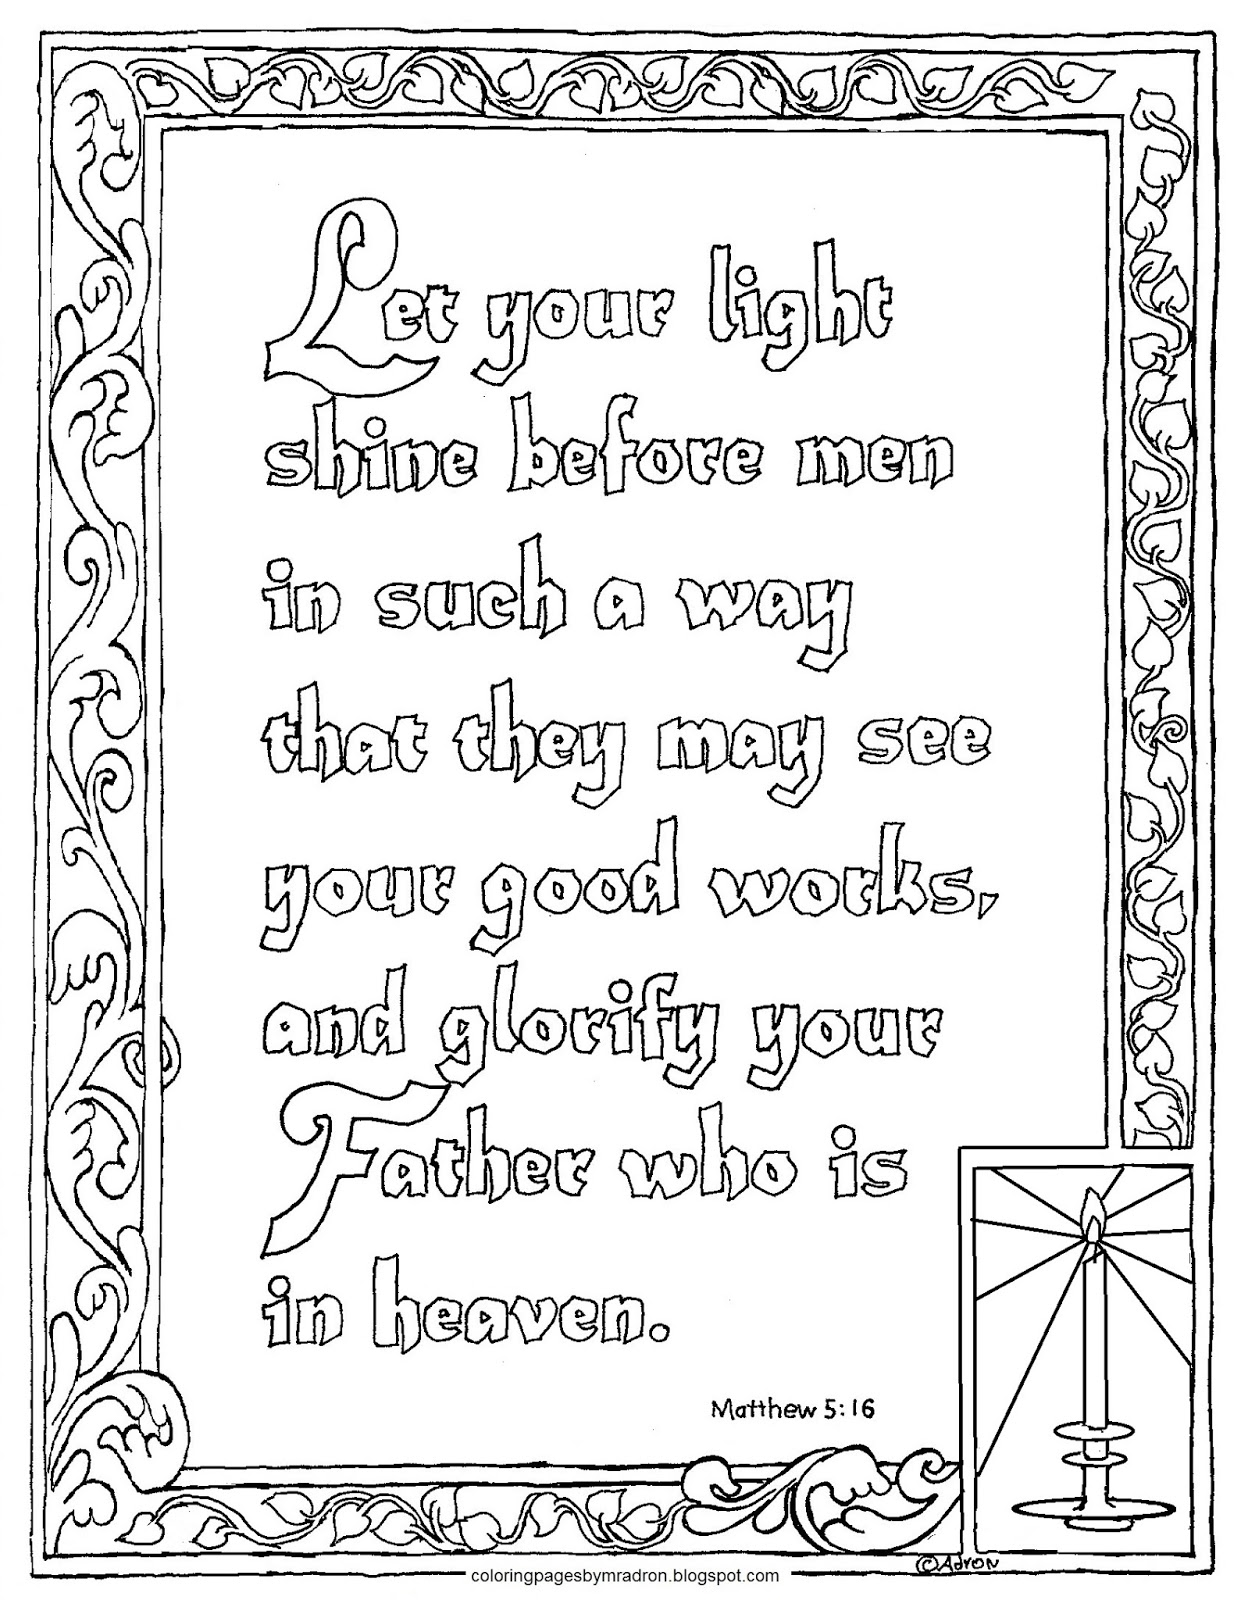 Coloring Pages For Kids By Mr Adron Printable Matthew 5 16 Let Your Light Shine Coloring Page